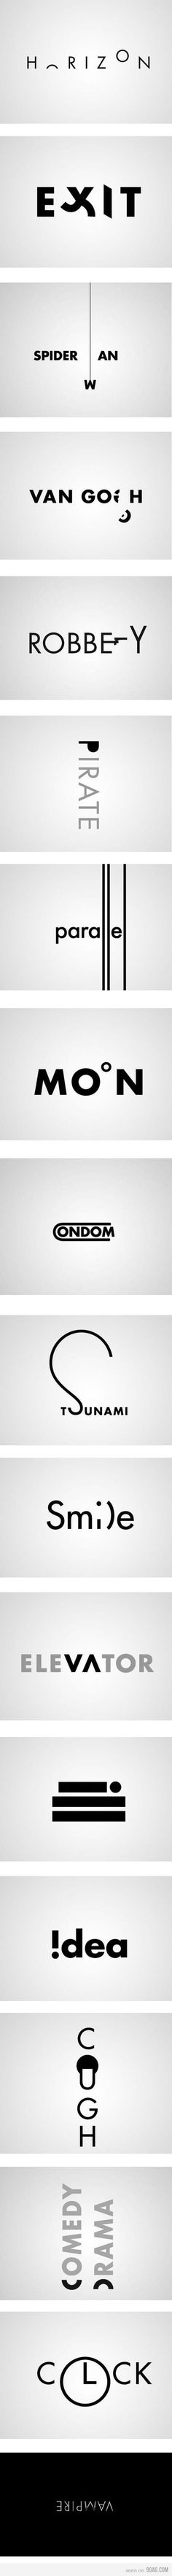 From: Word as Image  http://www.youtube.com/watch?v=J59n8FsoRLE    via @9GAG